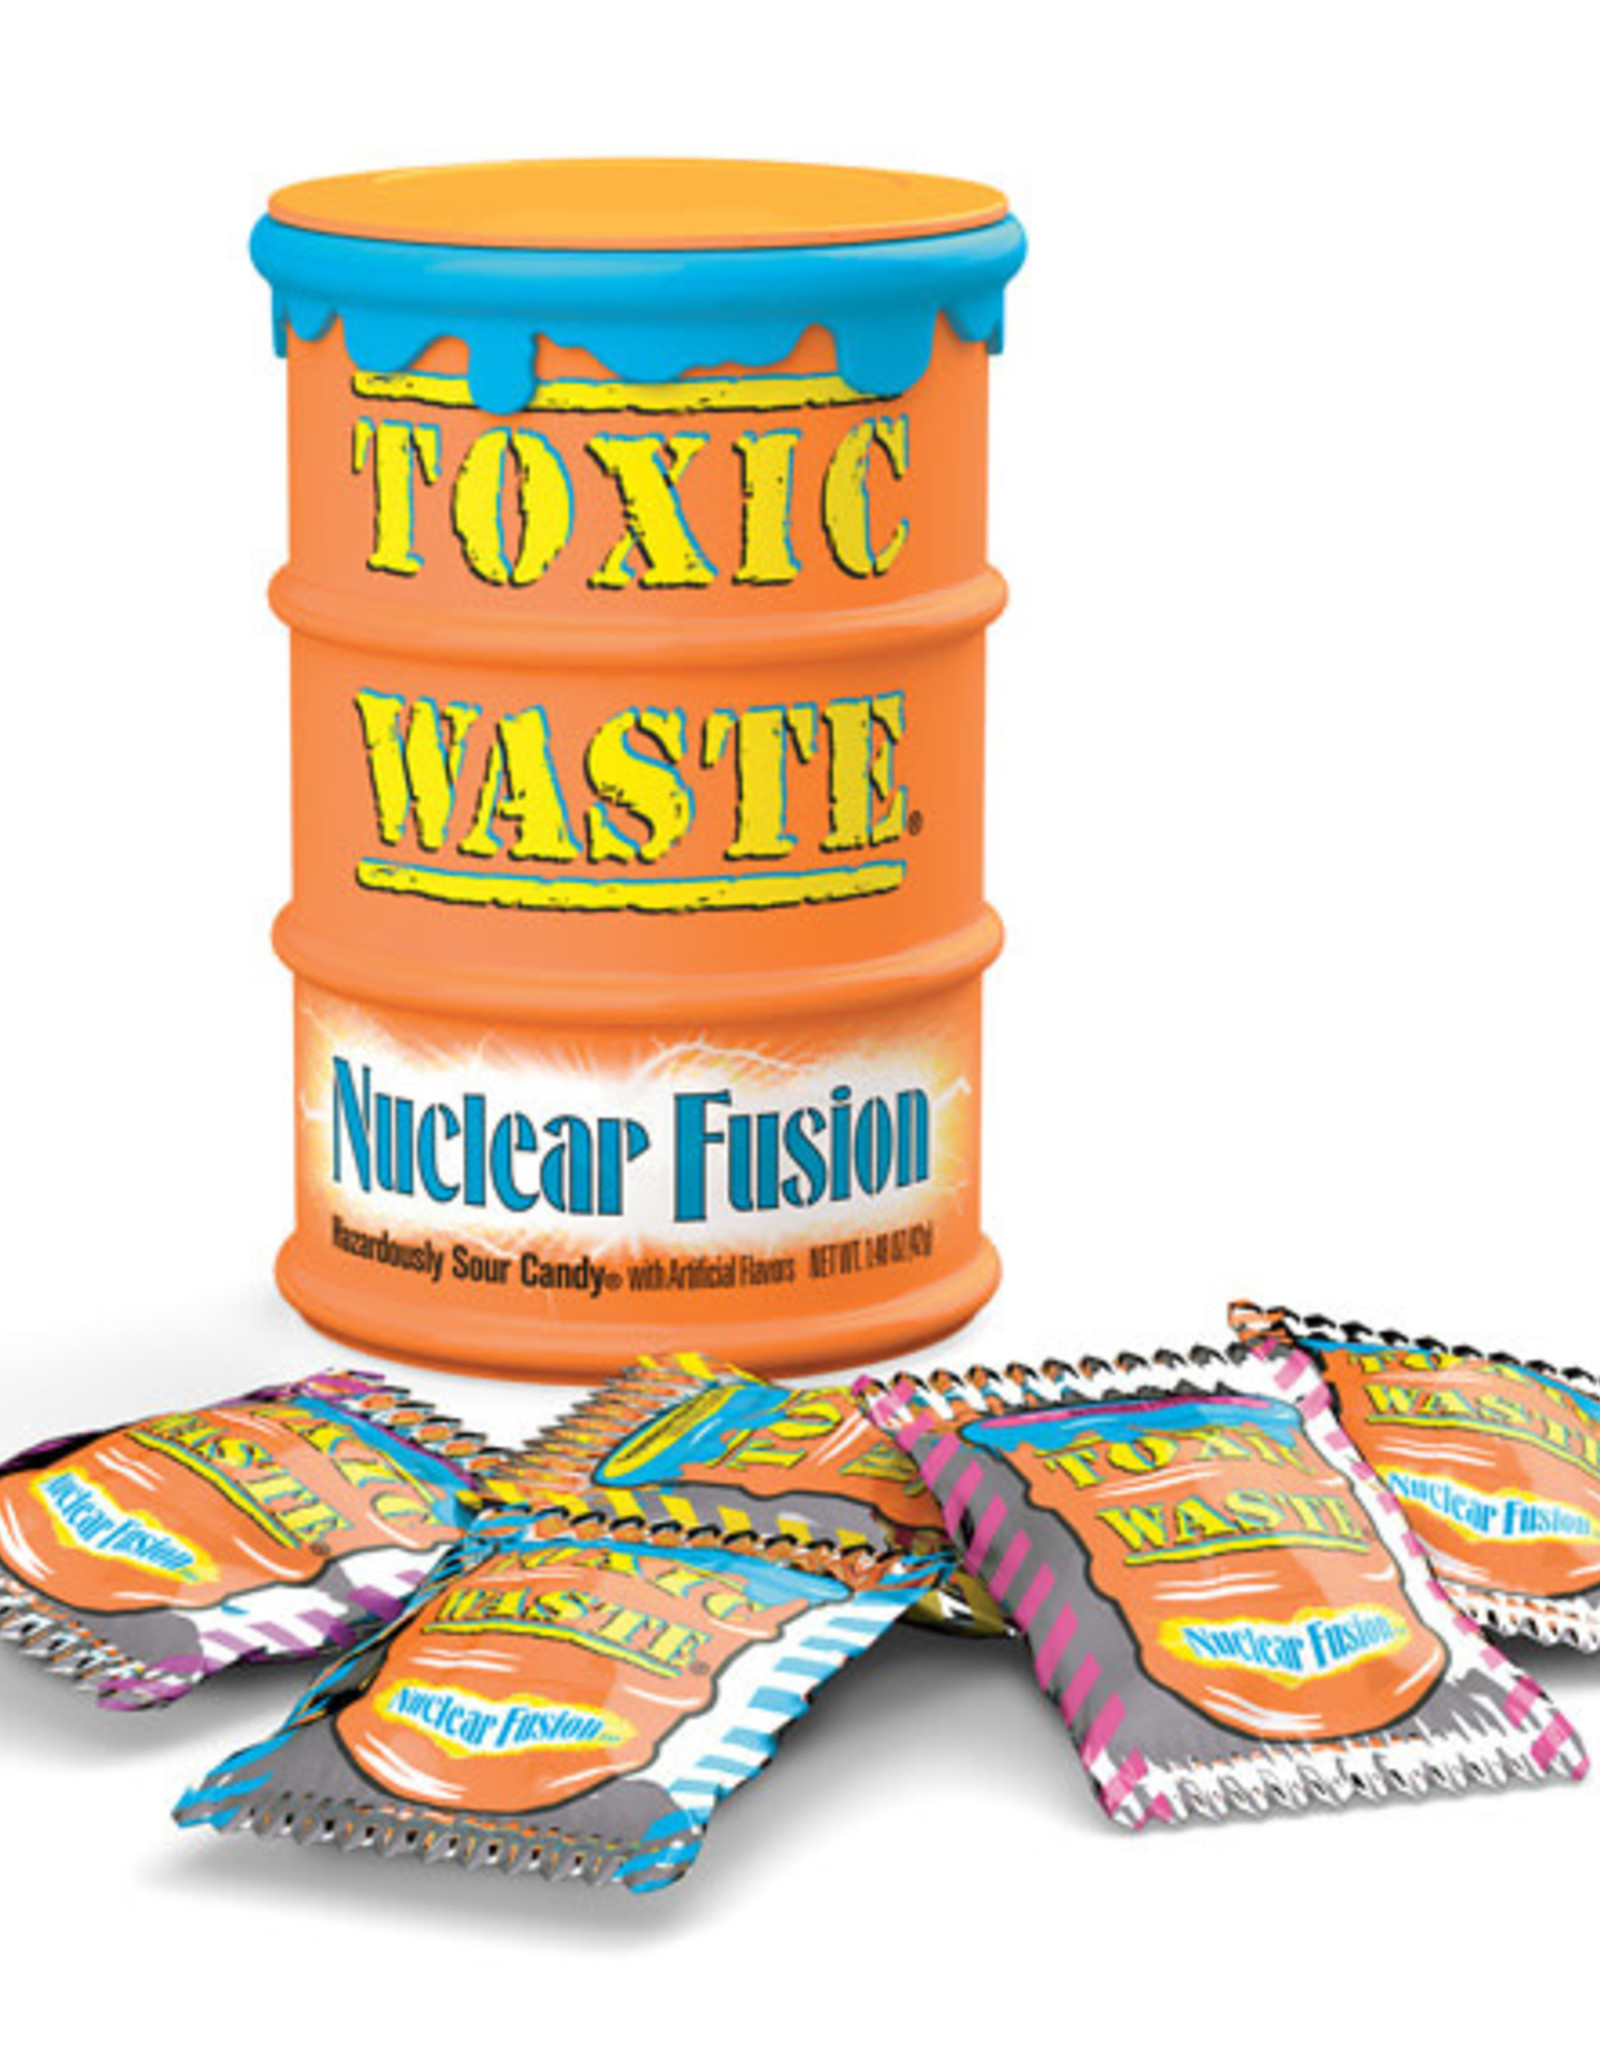 Toxic Waste Drums Nuclear Fusion